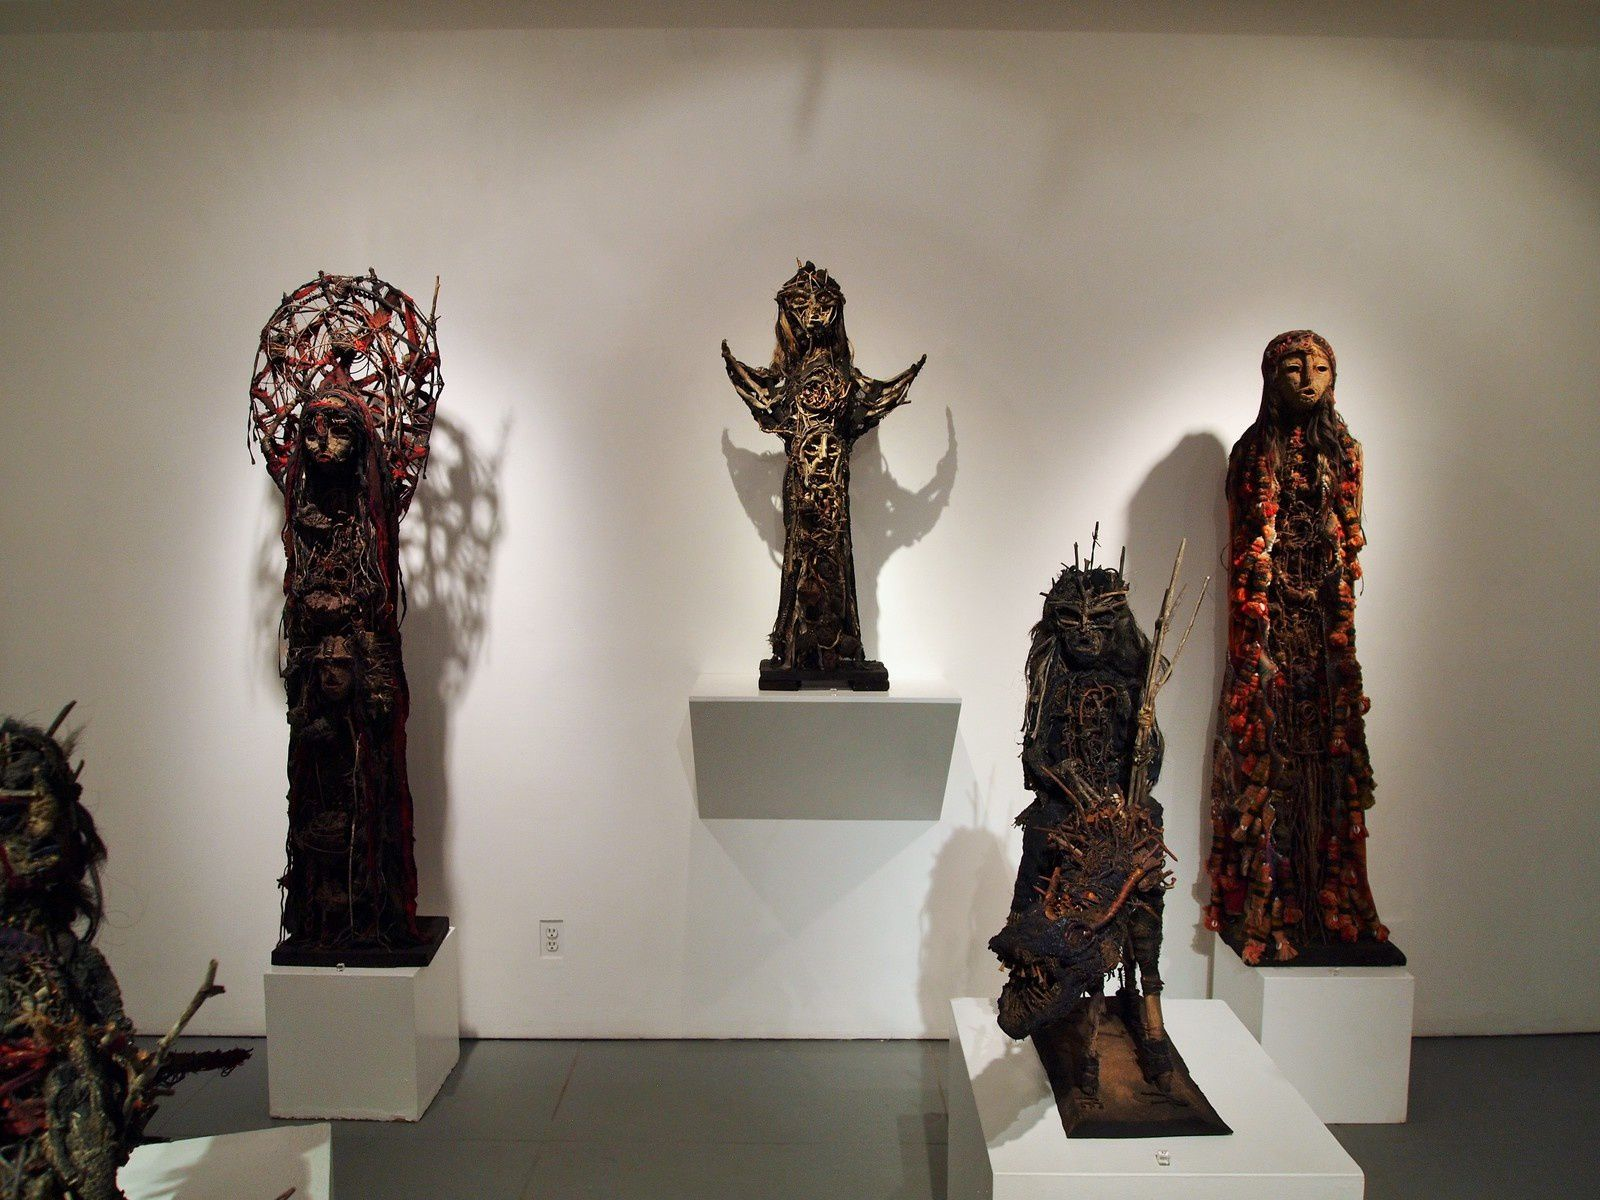 Exposition Forest Amuletum - Cavin Morris Gallery